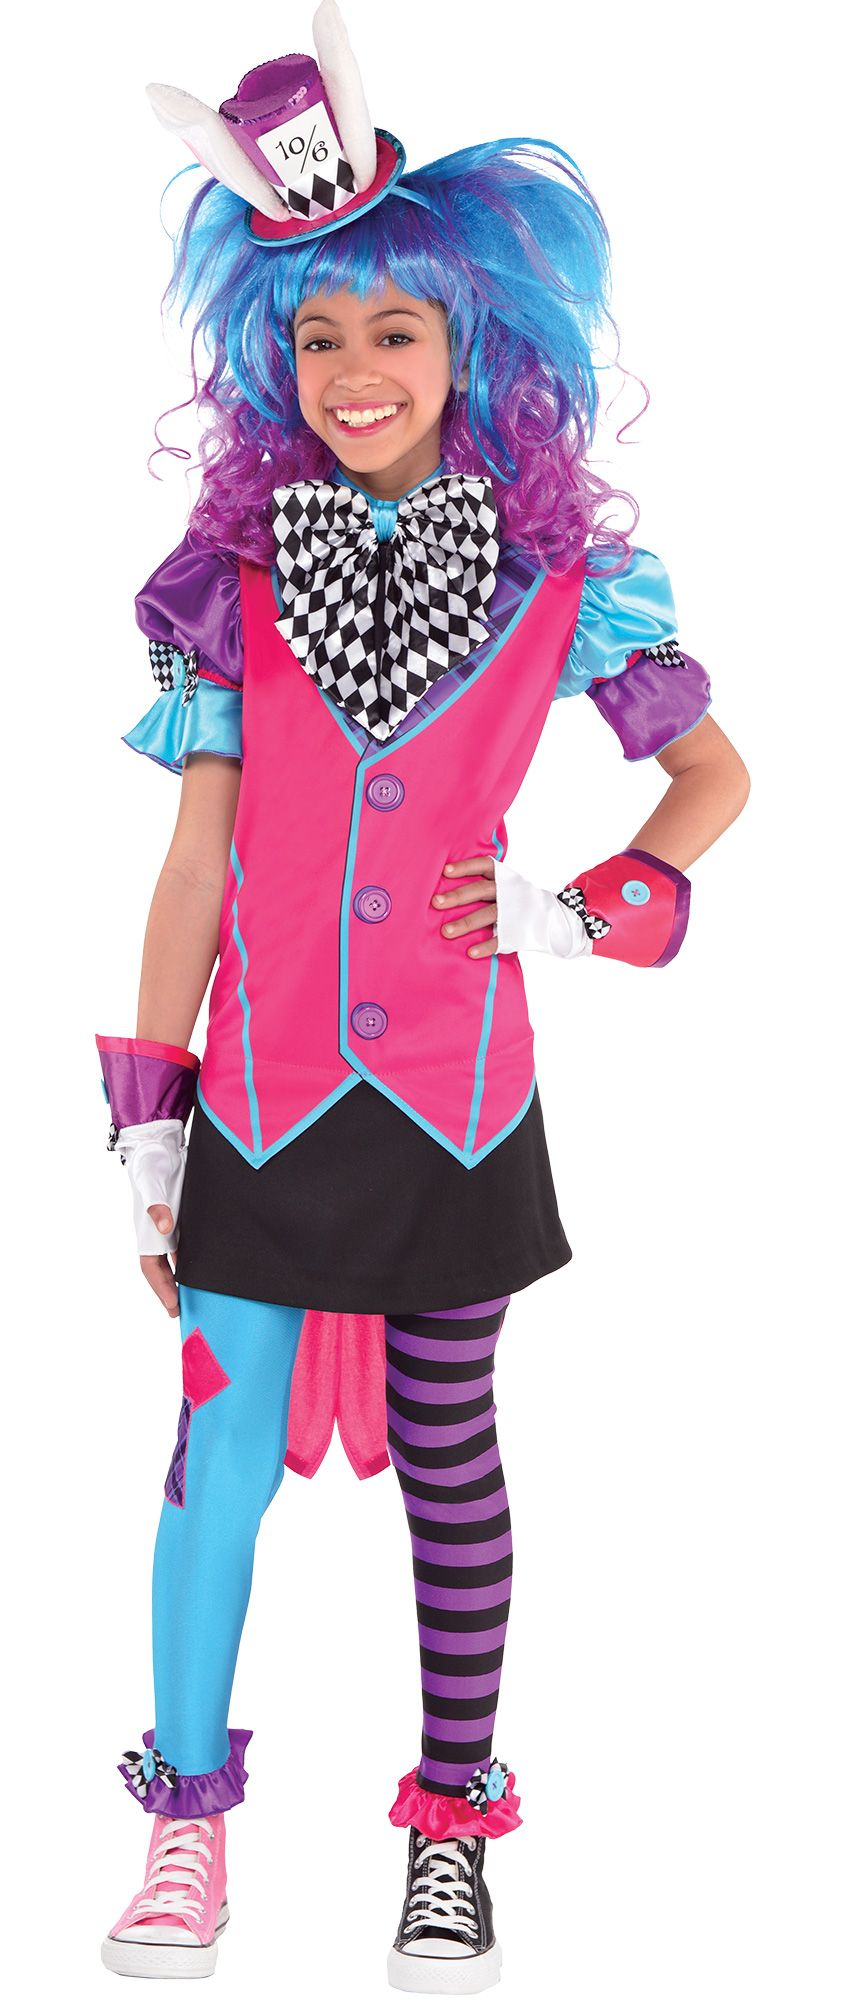 Create Your Own Look - Tween Madhatter